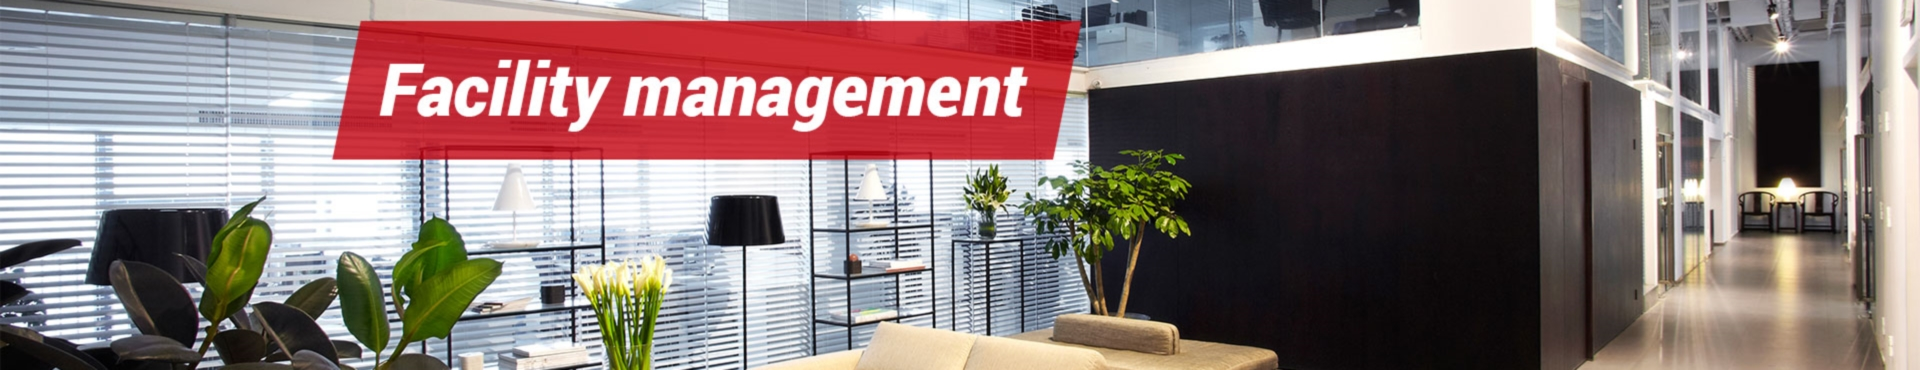 'Facility management